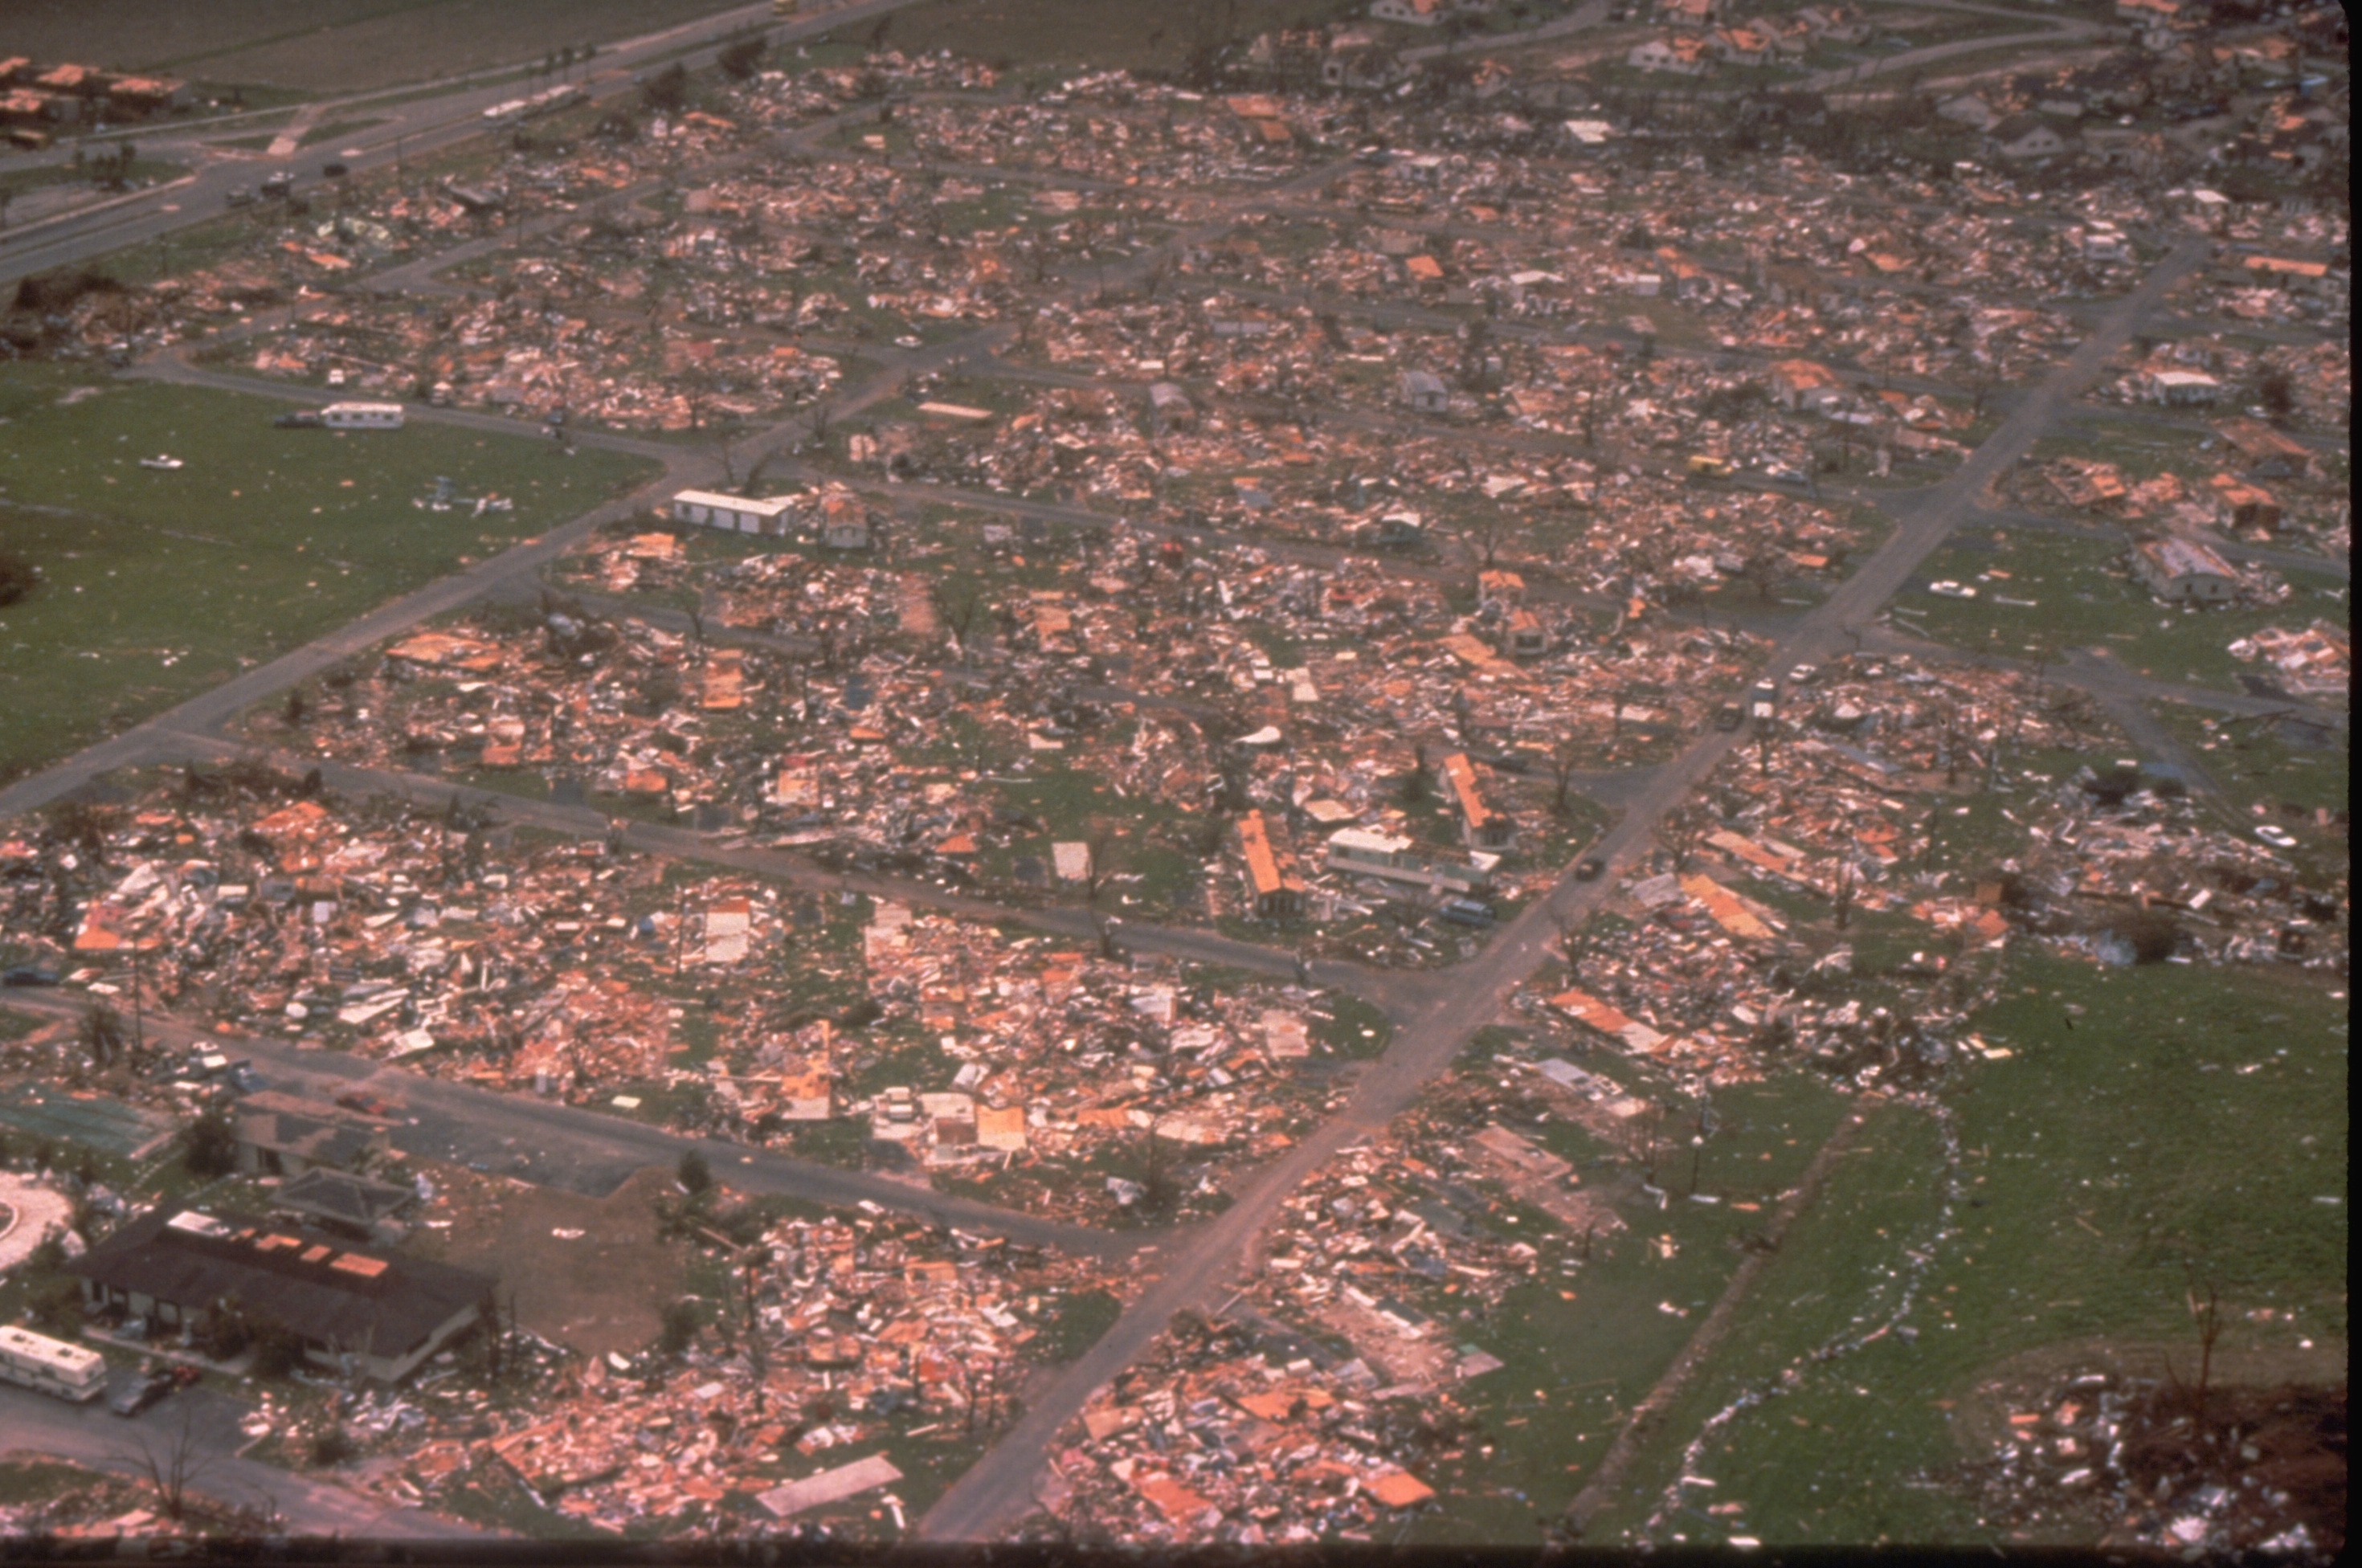 Category 5 Tornado : A good read on the category hurricanes record in